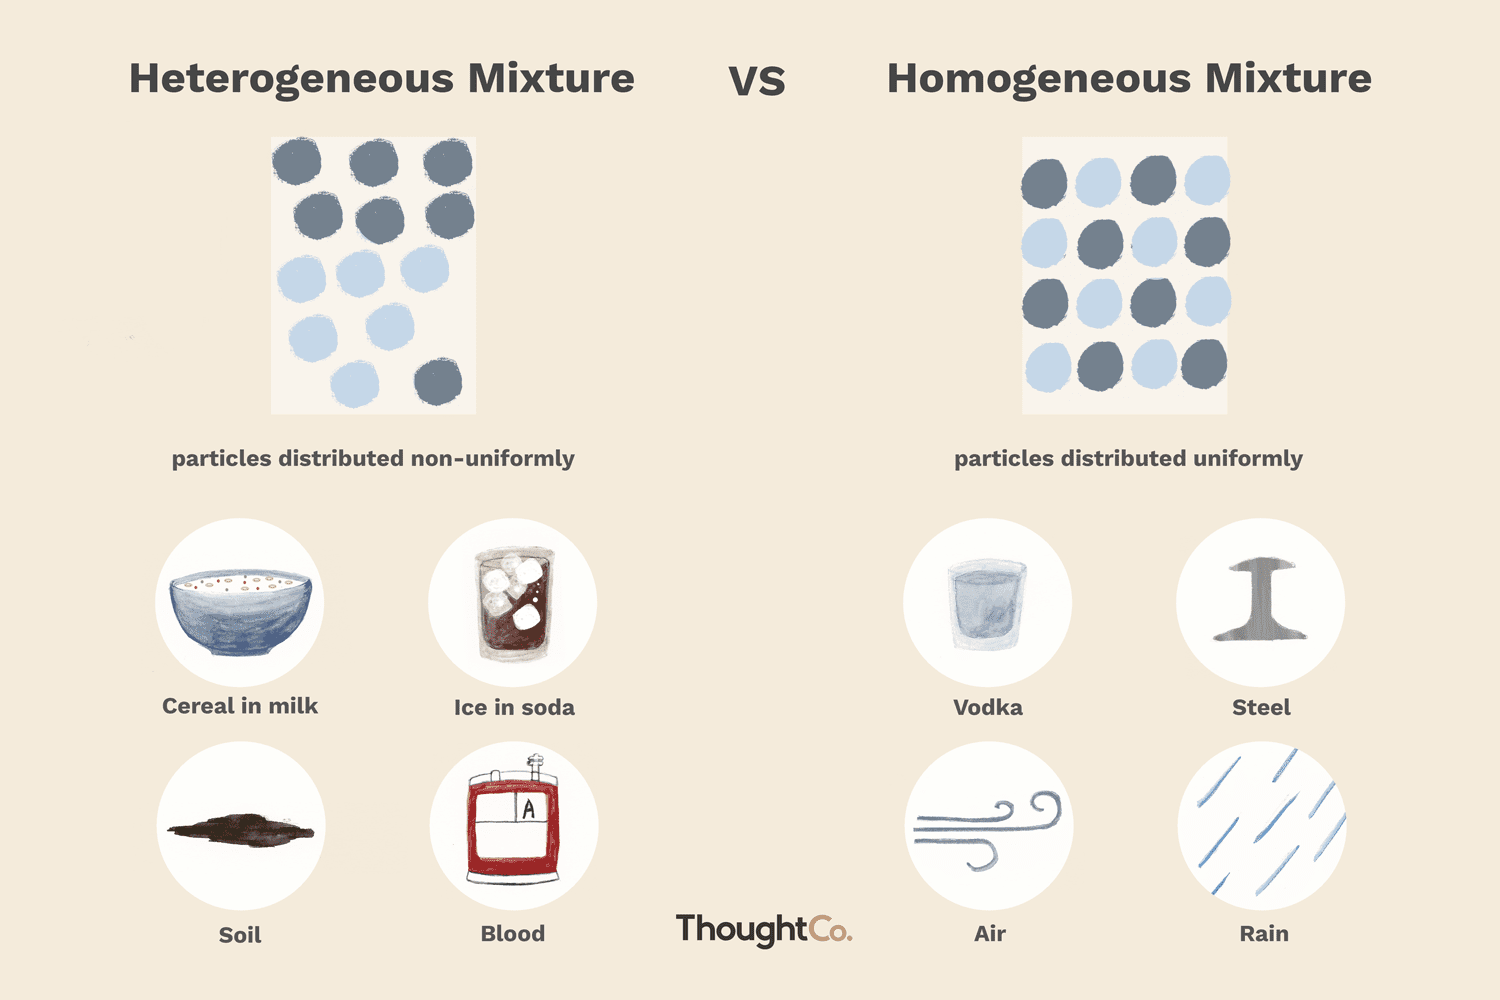 Difference Between Heterogeneous & Homogeneous Mixtures